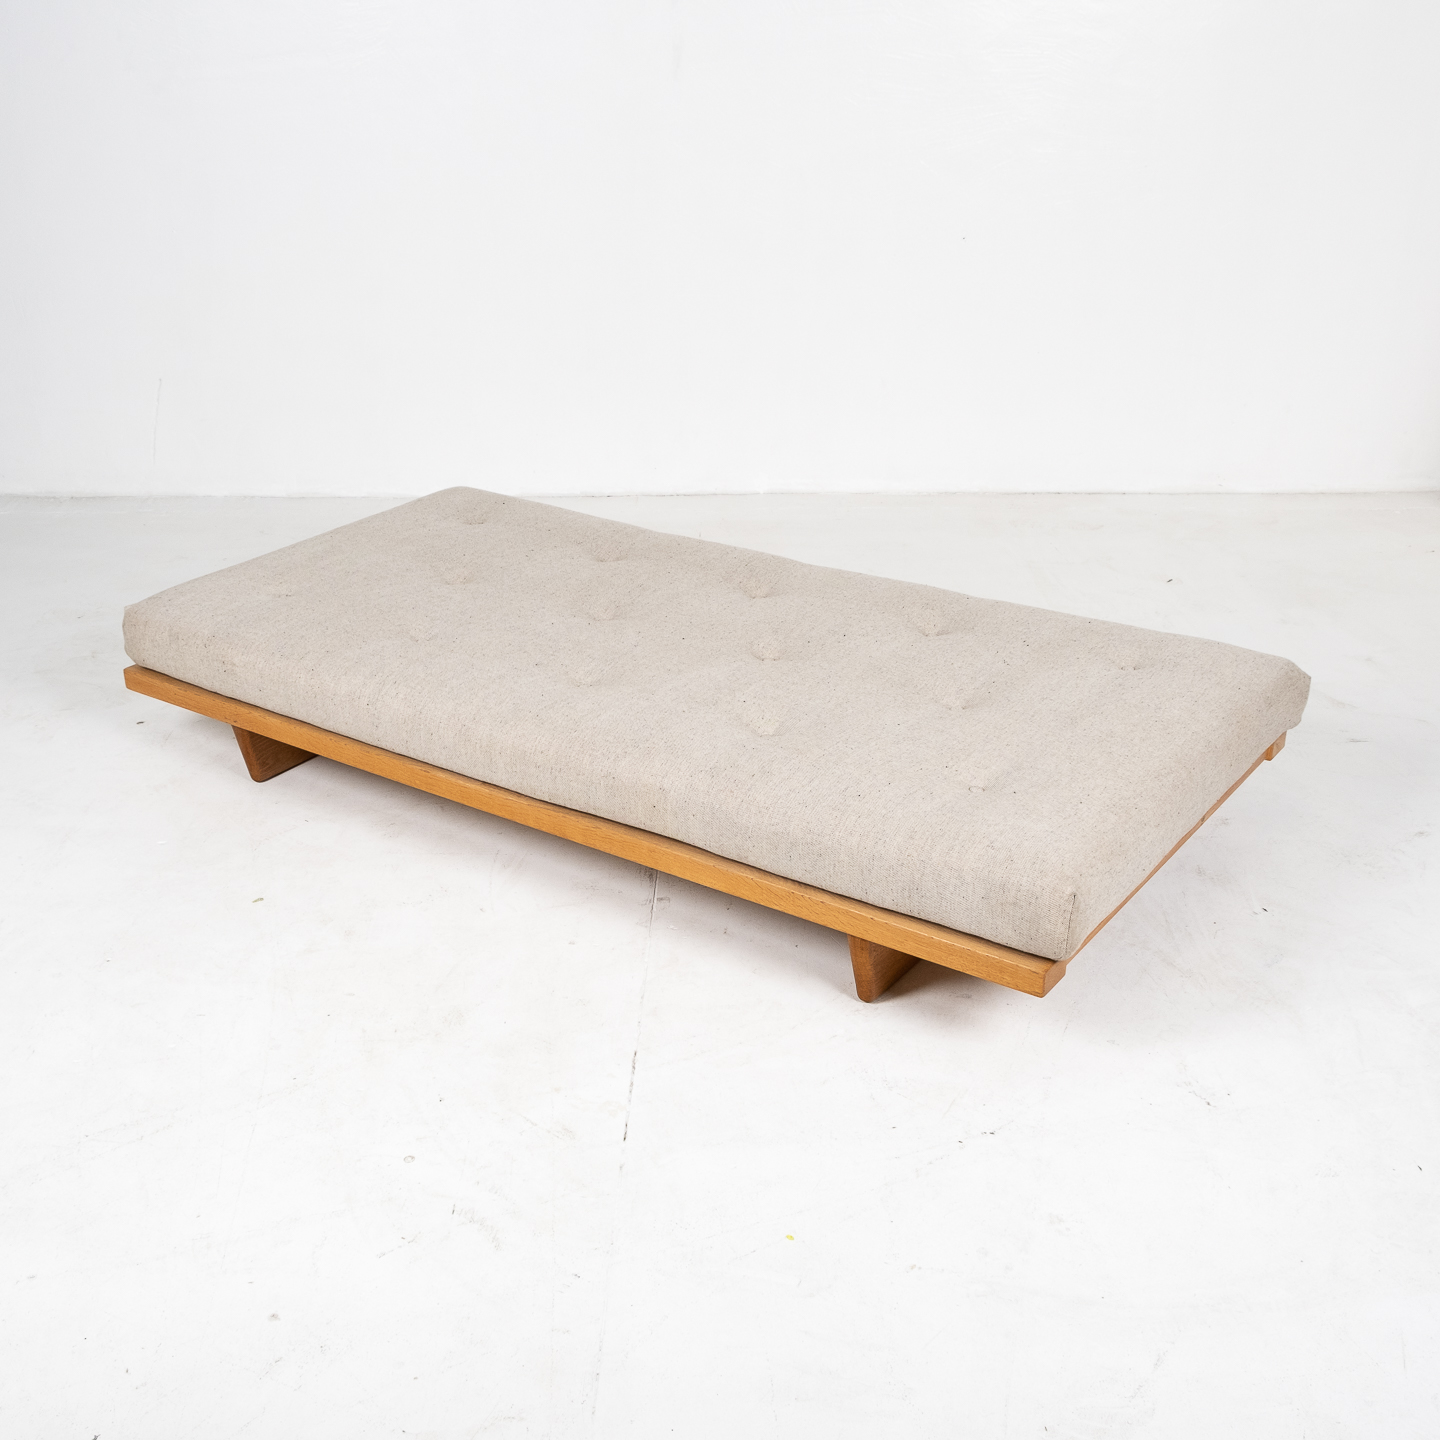 Model 192 Daybed By Borge Mogensen For Fredericia Stolefabrik In Oak And Instyle Upholstery, 1958, Denmark 16